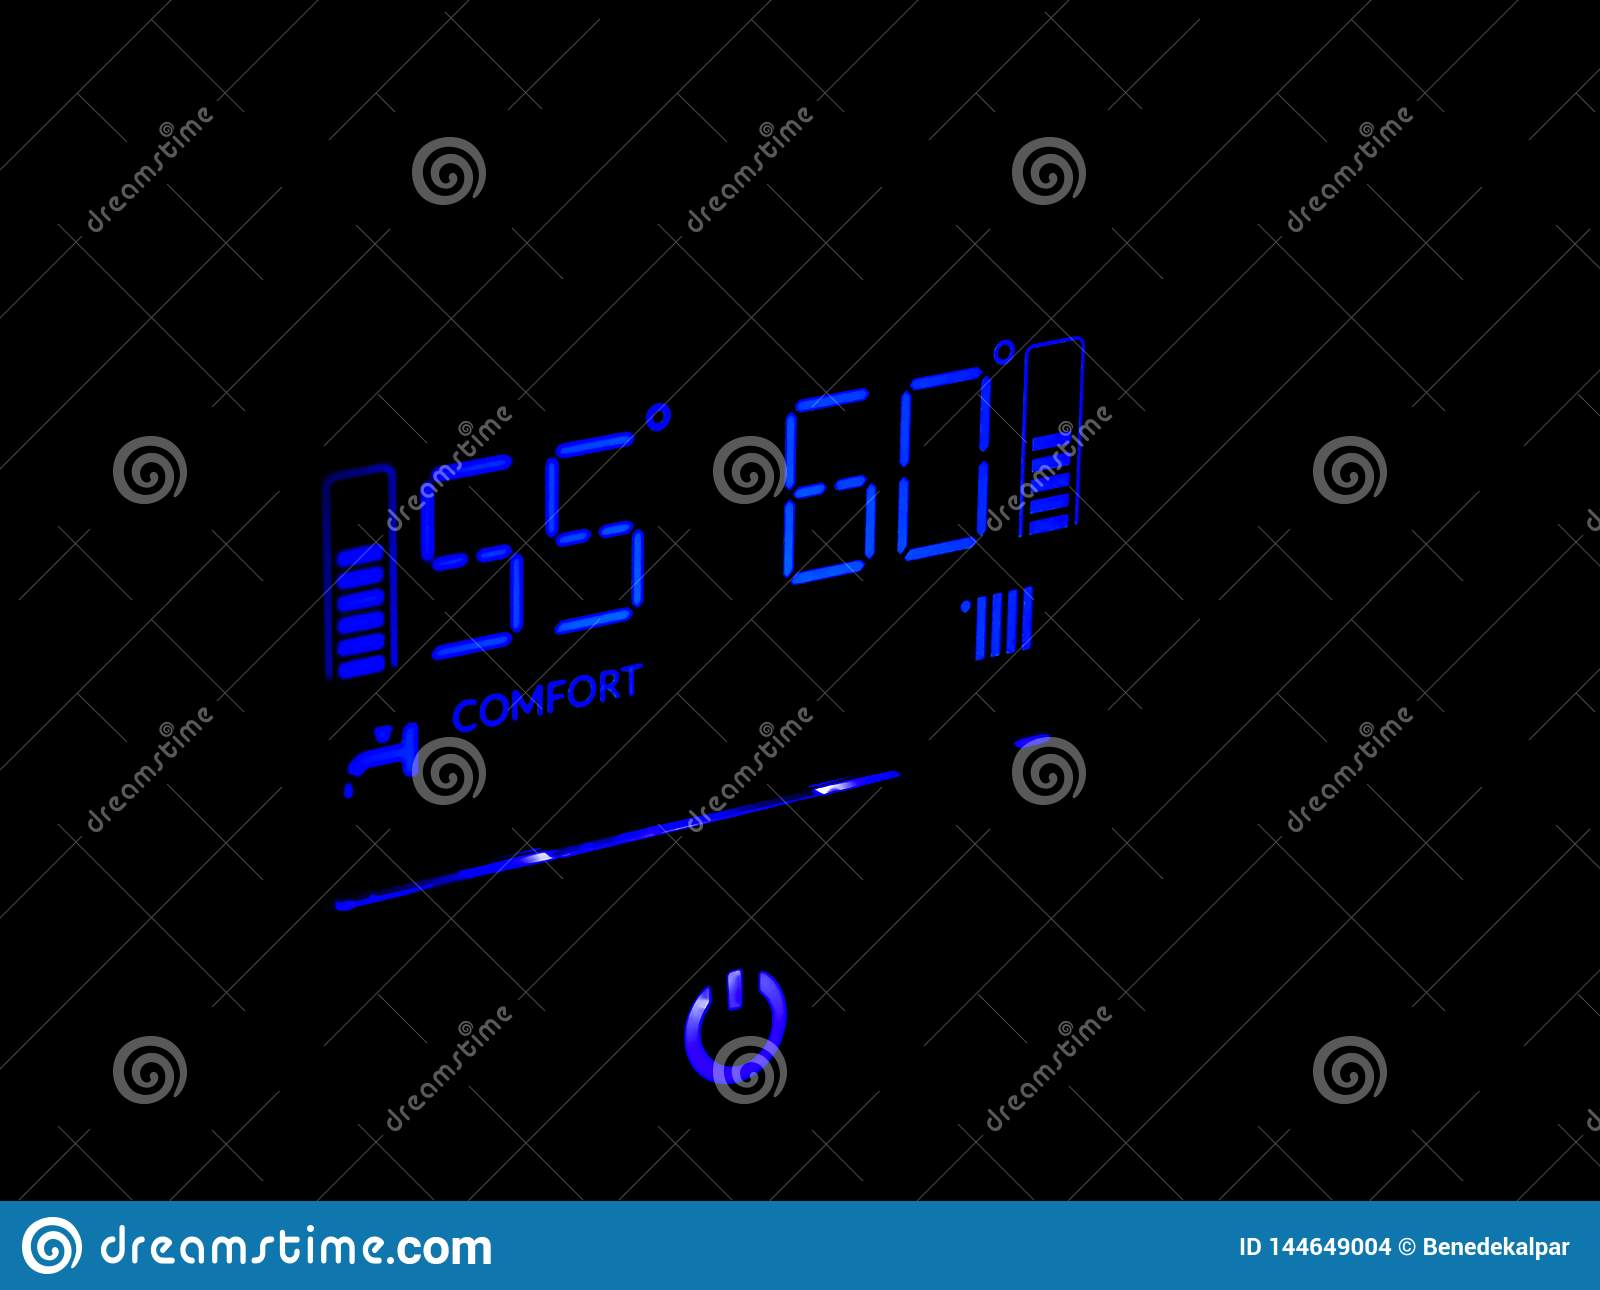 Blue properly working gas central heater digital display